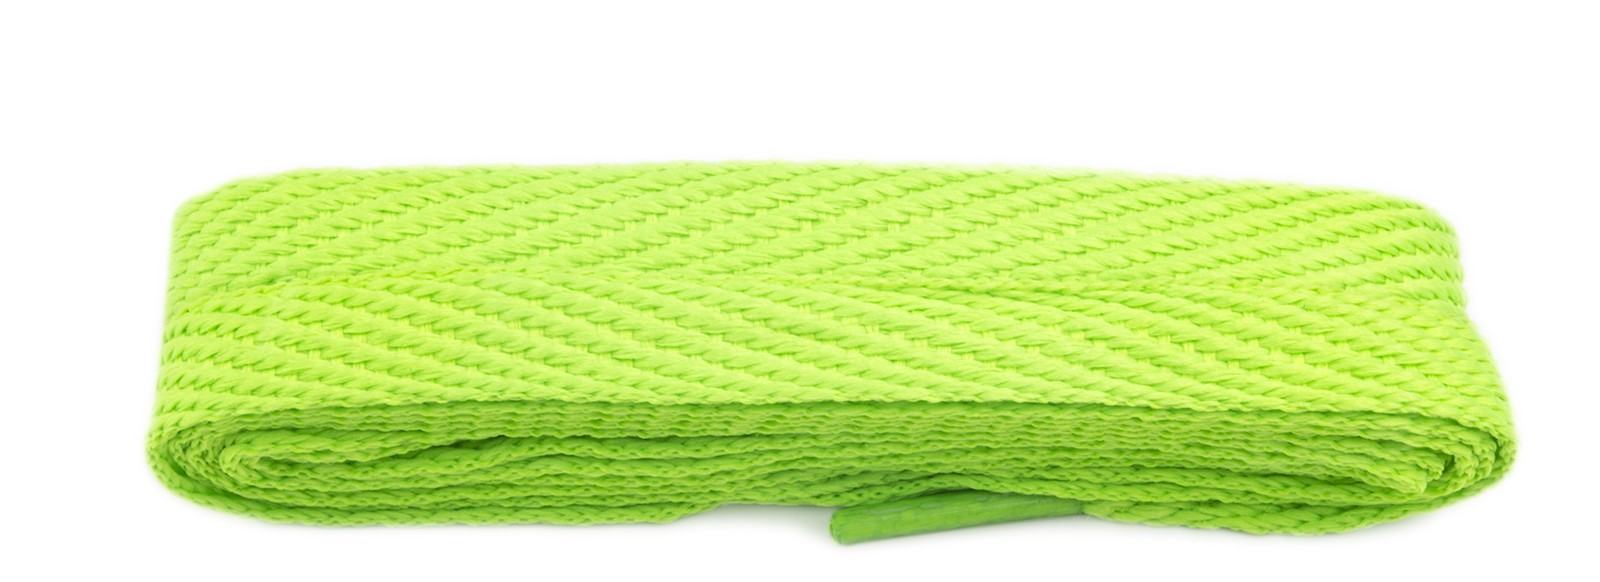 Lime 120cm American Flat 10mm Laces